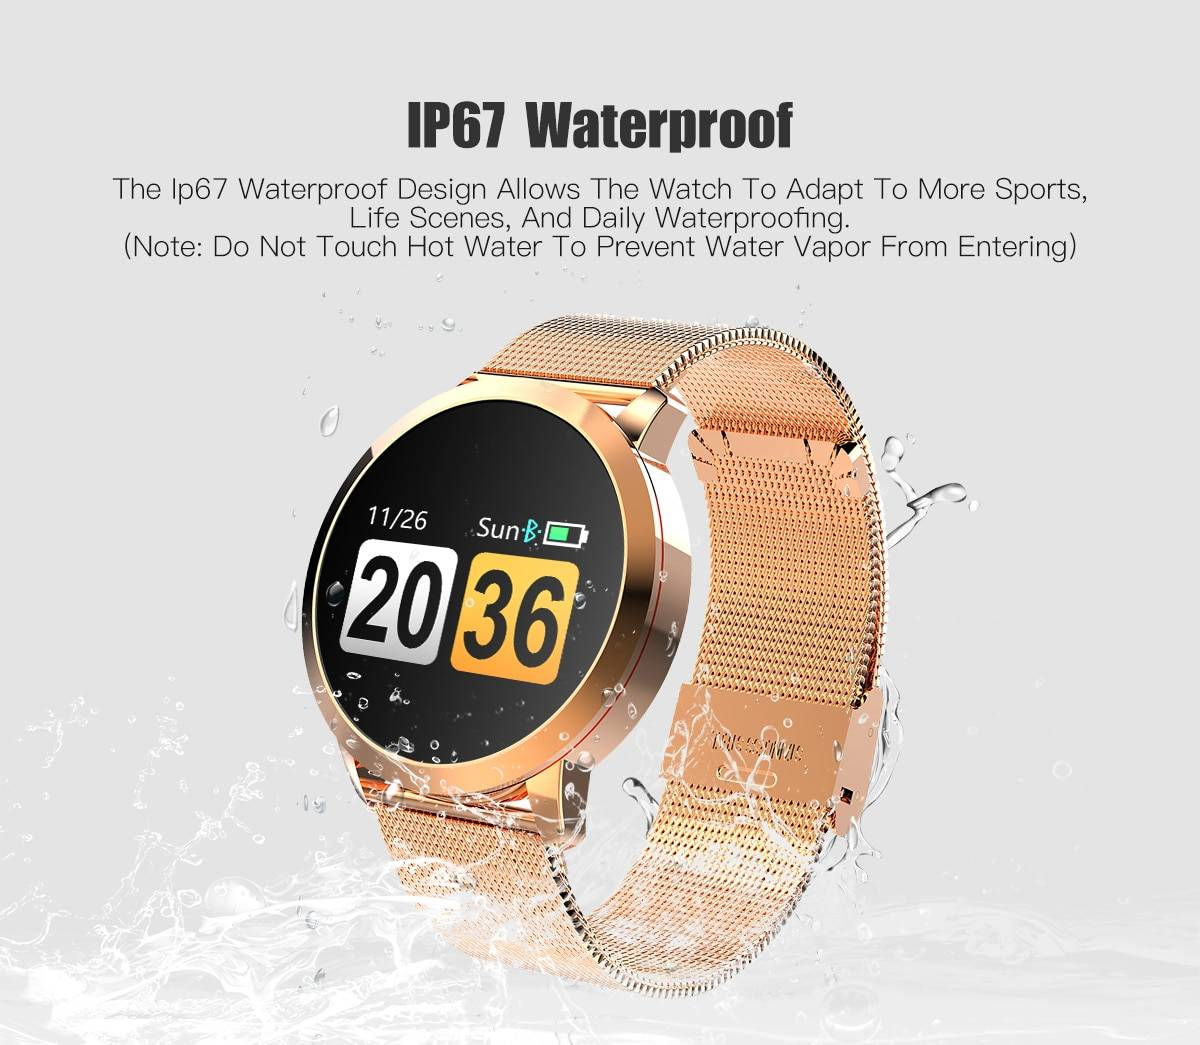 New Men's Women's Watch Q8 Smart Watch OLED Color Screen Smartwatch women Fashion Fitness sport Tracker Heart Rate monitor